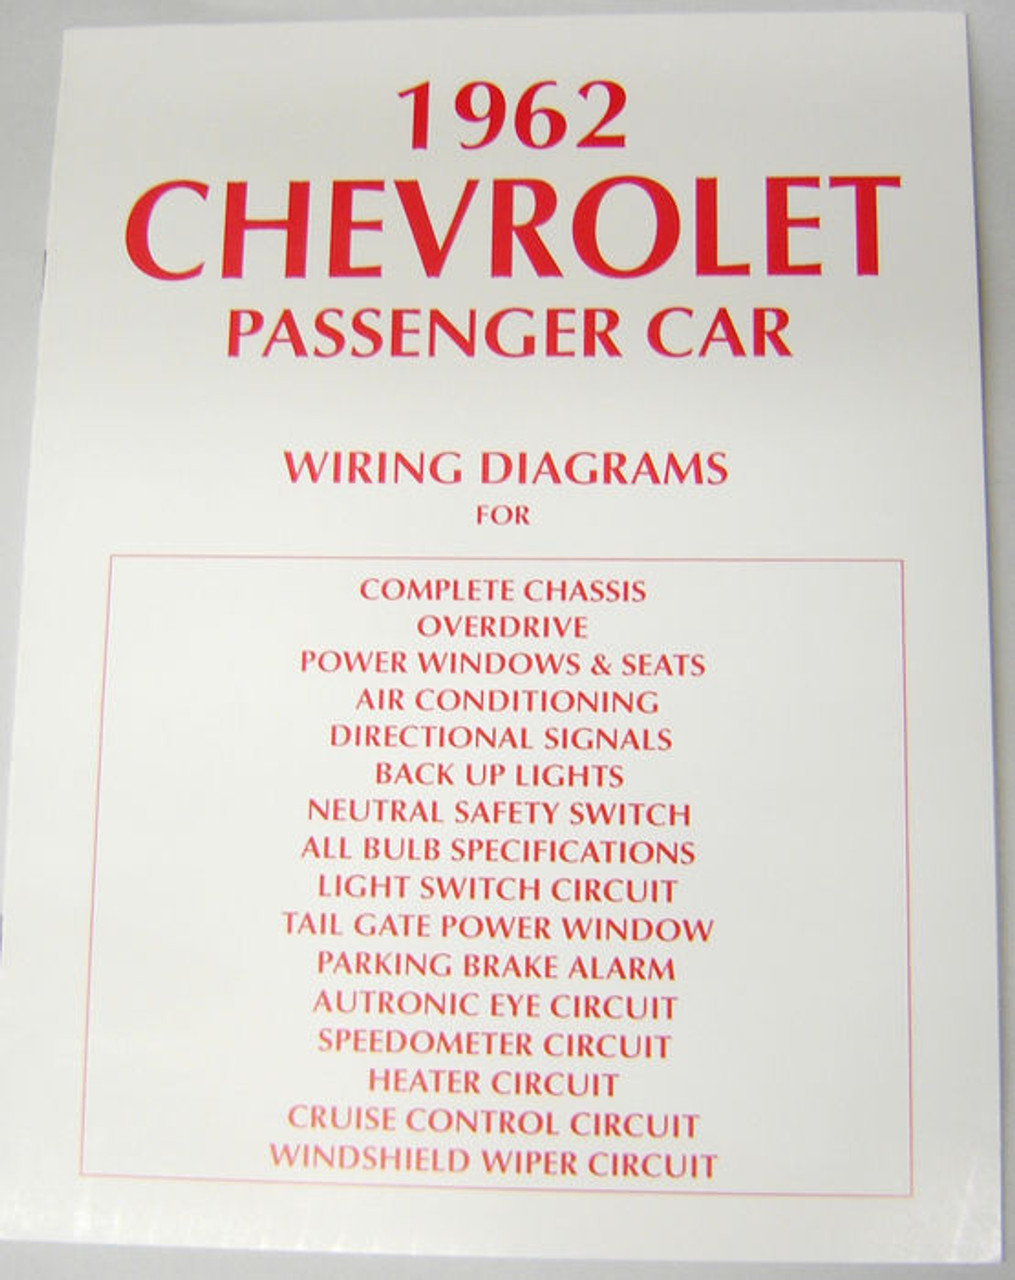 62 Chevy Impala Electrical Wiring Diagram Manual 1962 on